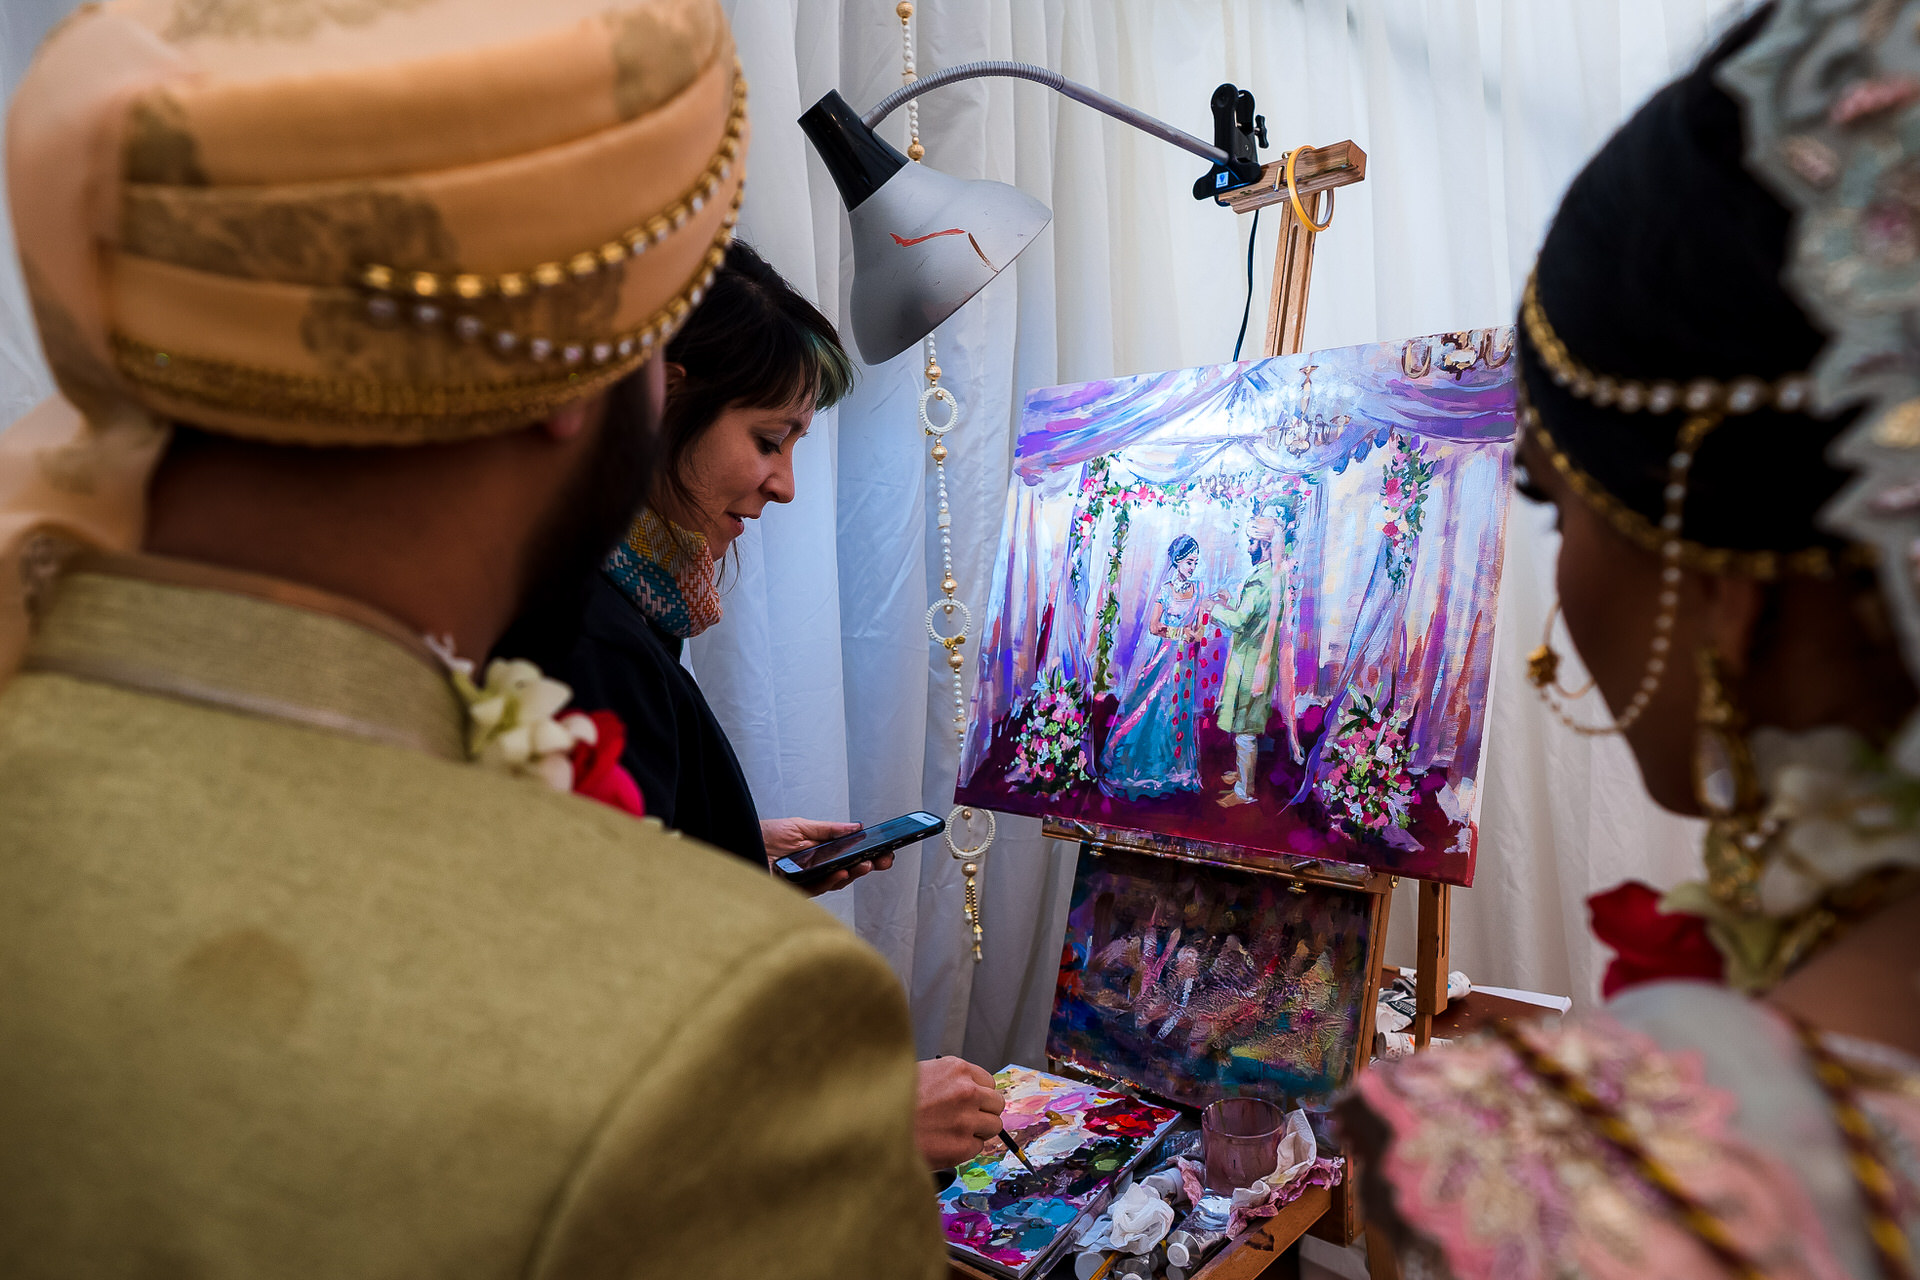 London-based Indian Elopement Photography | Live painting of the ceremony by artist Stephanie Struth